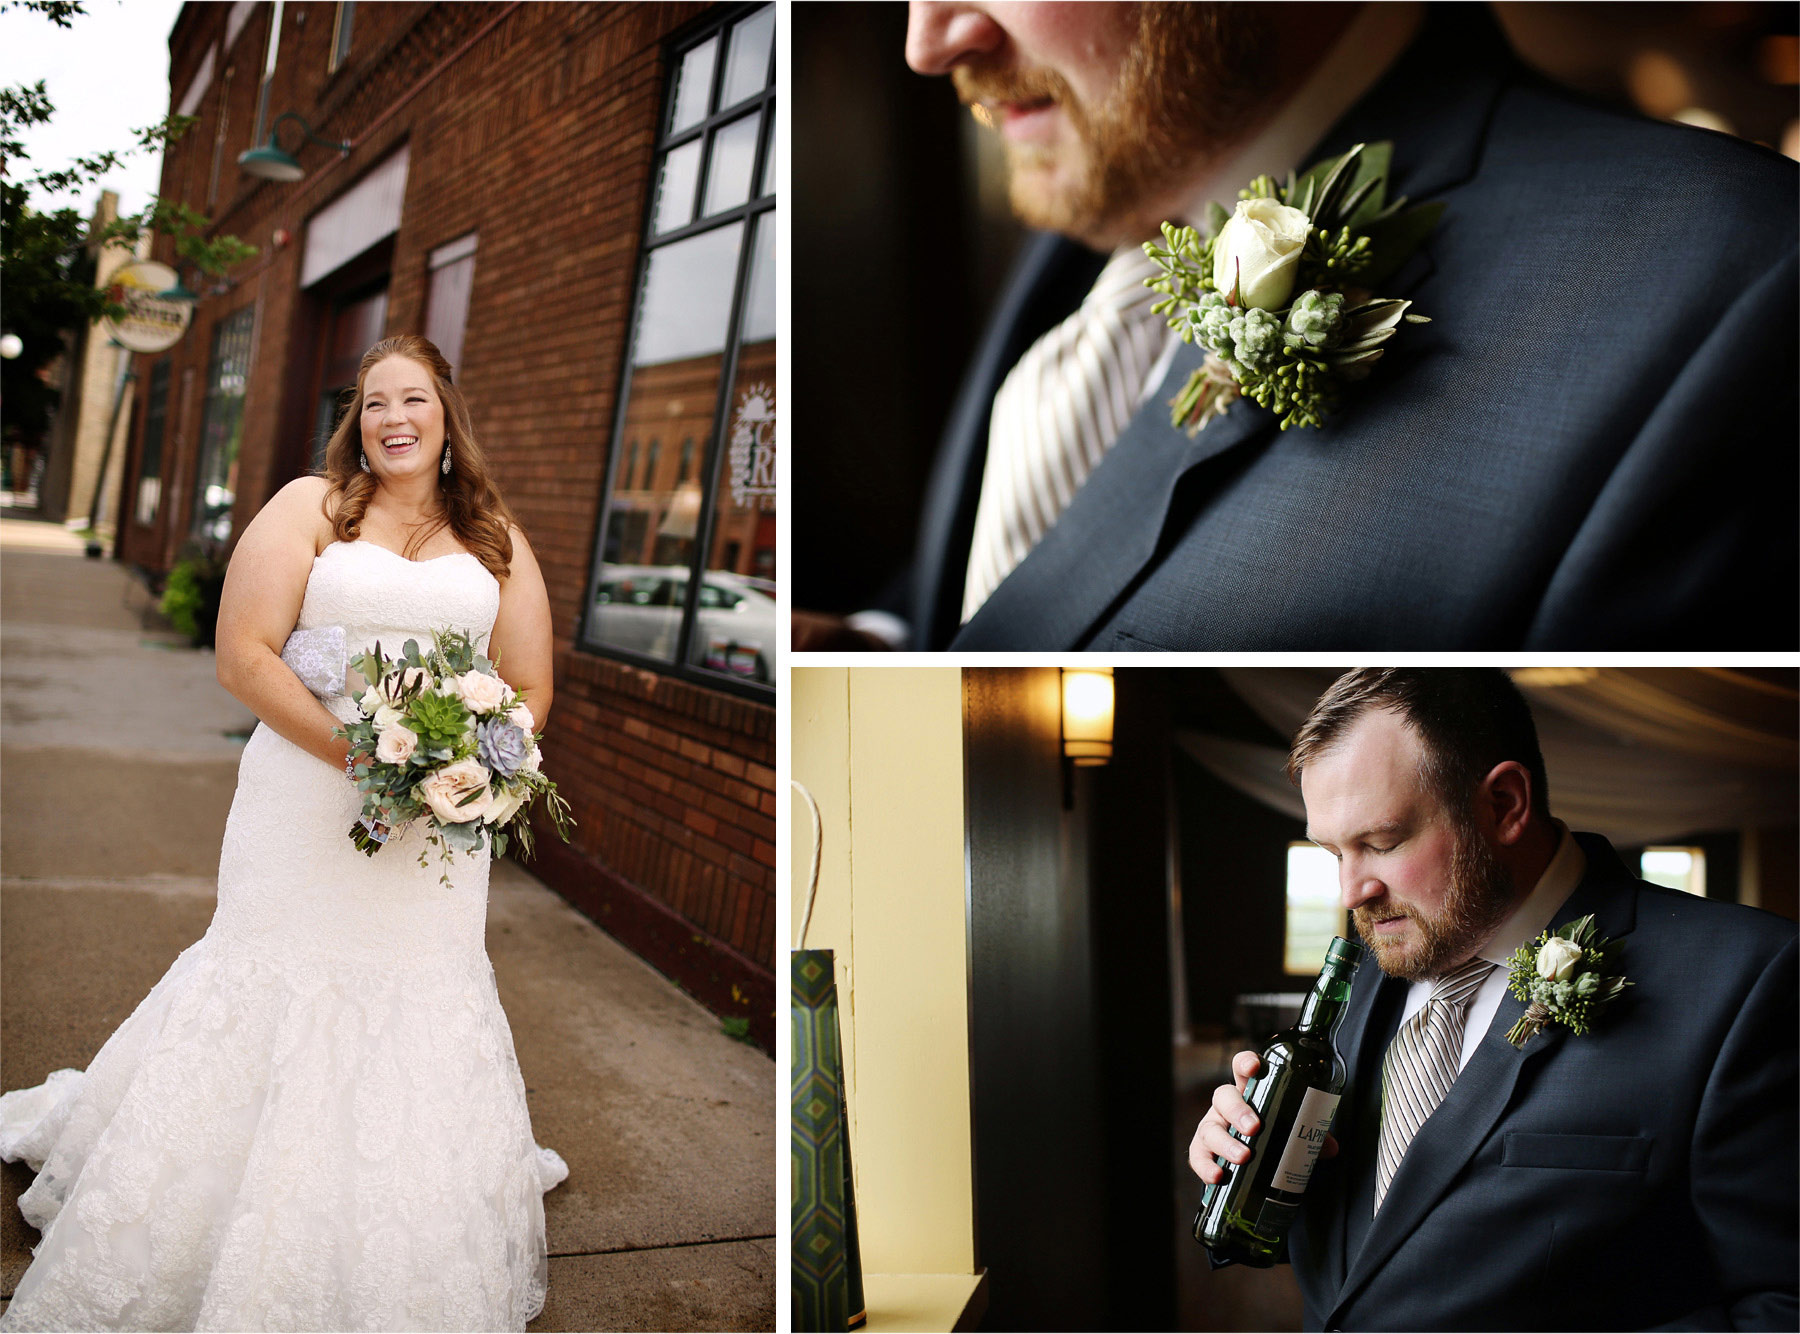 04-Cannon-Falls-Minnesota-Wedding-Photographer-by-Andrew-Vick-Photography-Summer-River-Winery-Bride-Groom-Flowers-Boutonniere-Wine-Becca-and-Donal.jpg